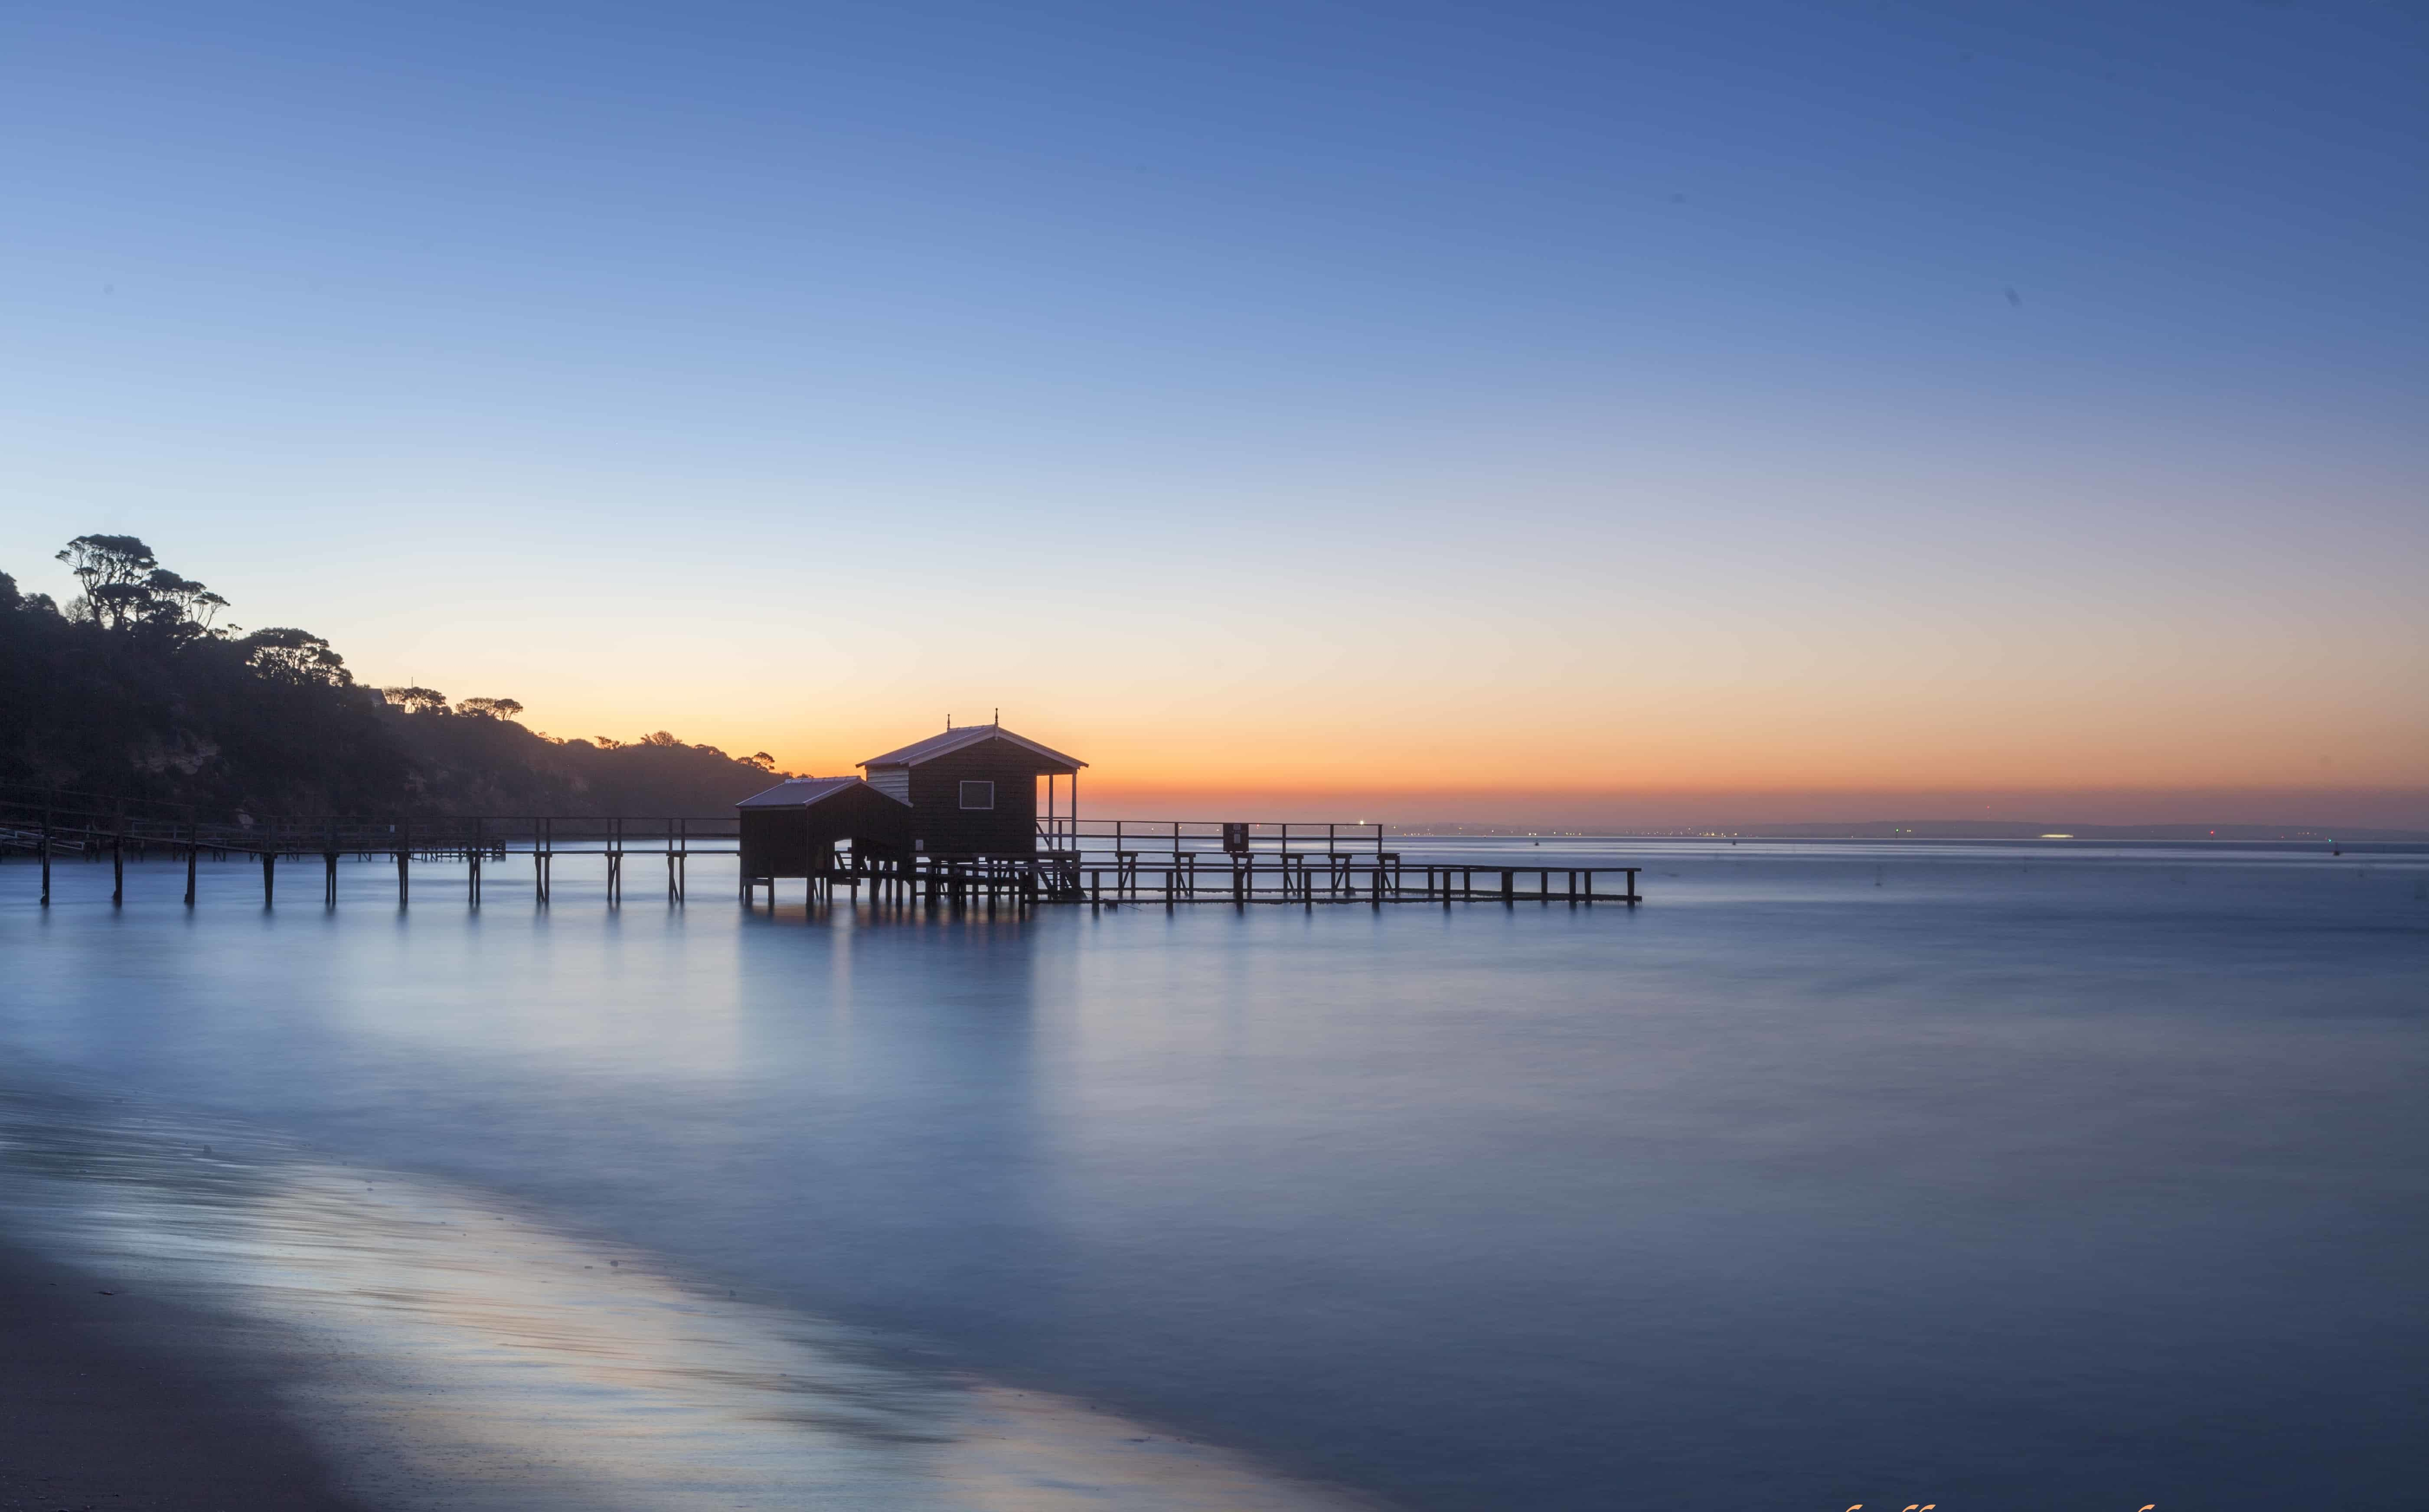 Wood Background Hd Wallpaper Free Picture Nature Dawn Sun Dusk Sunset Water Pier